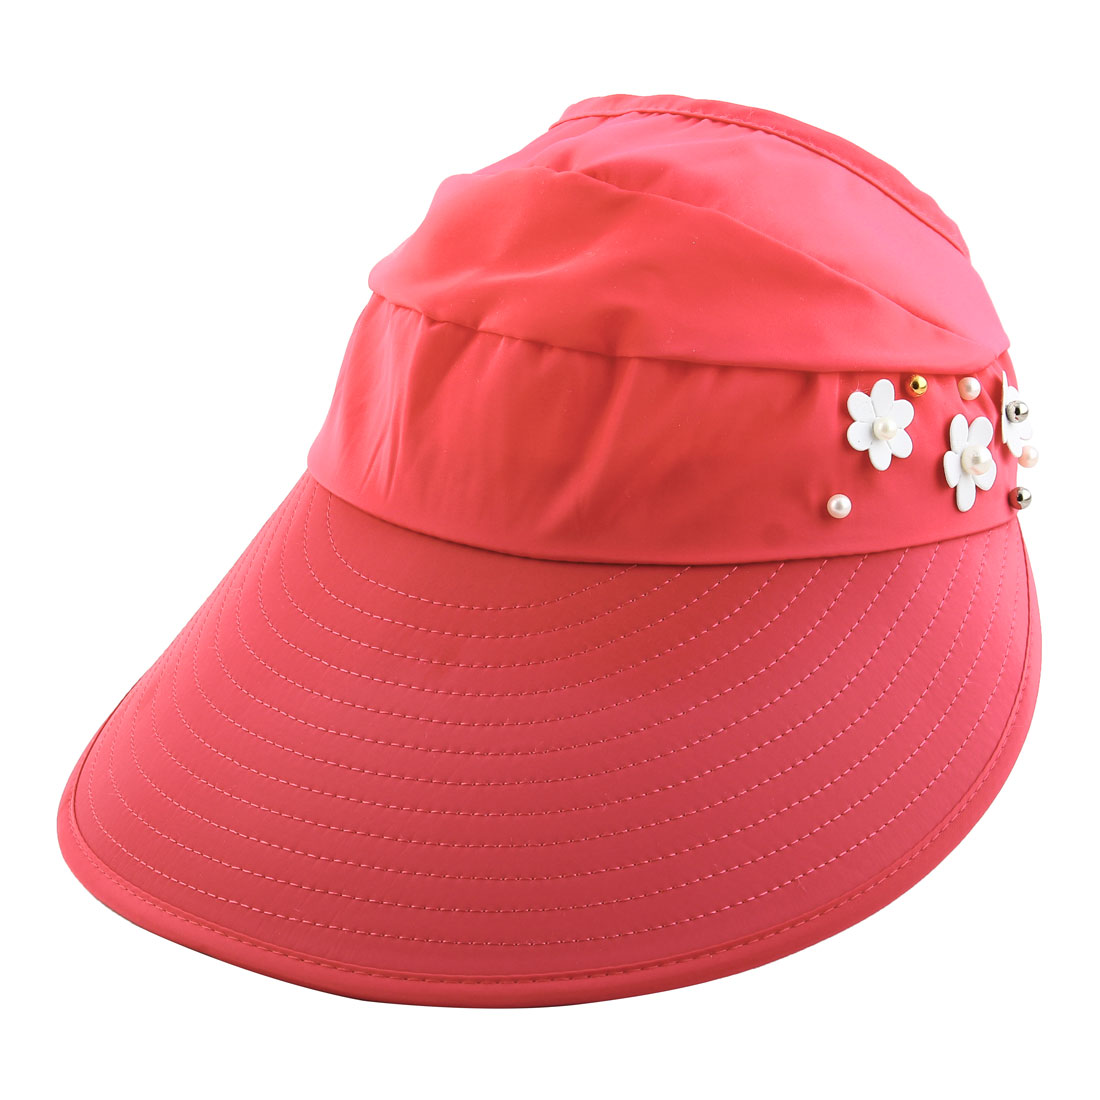 Woman Imitation Pearl Flower Decor Adjustable Summer Beach Floppy Cap Sun Visor Hat Salmon Pink